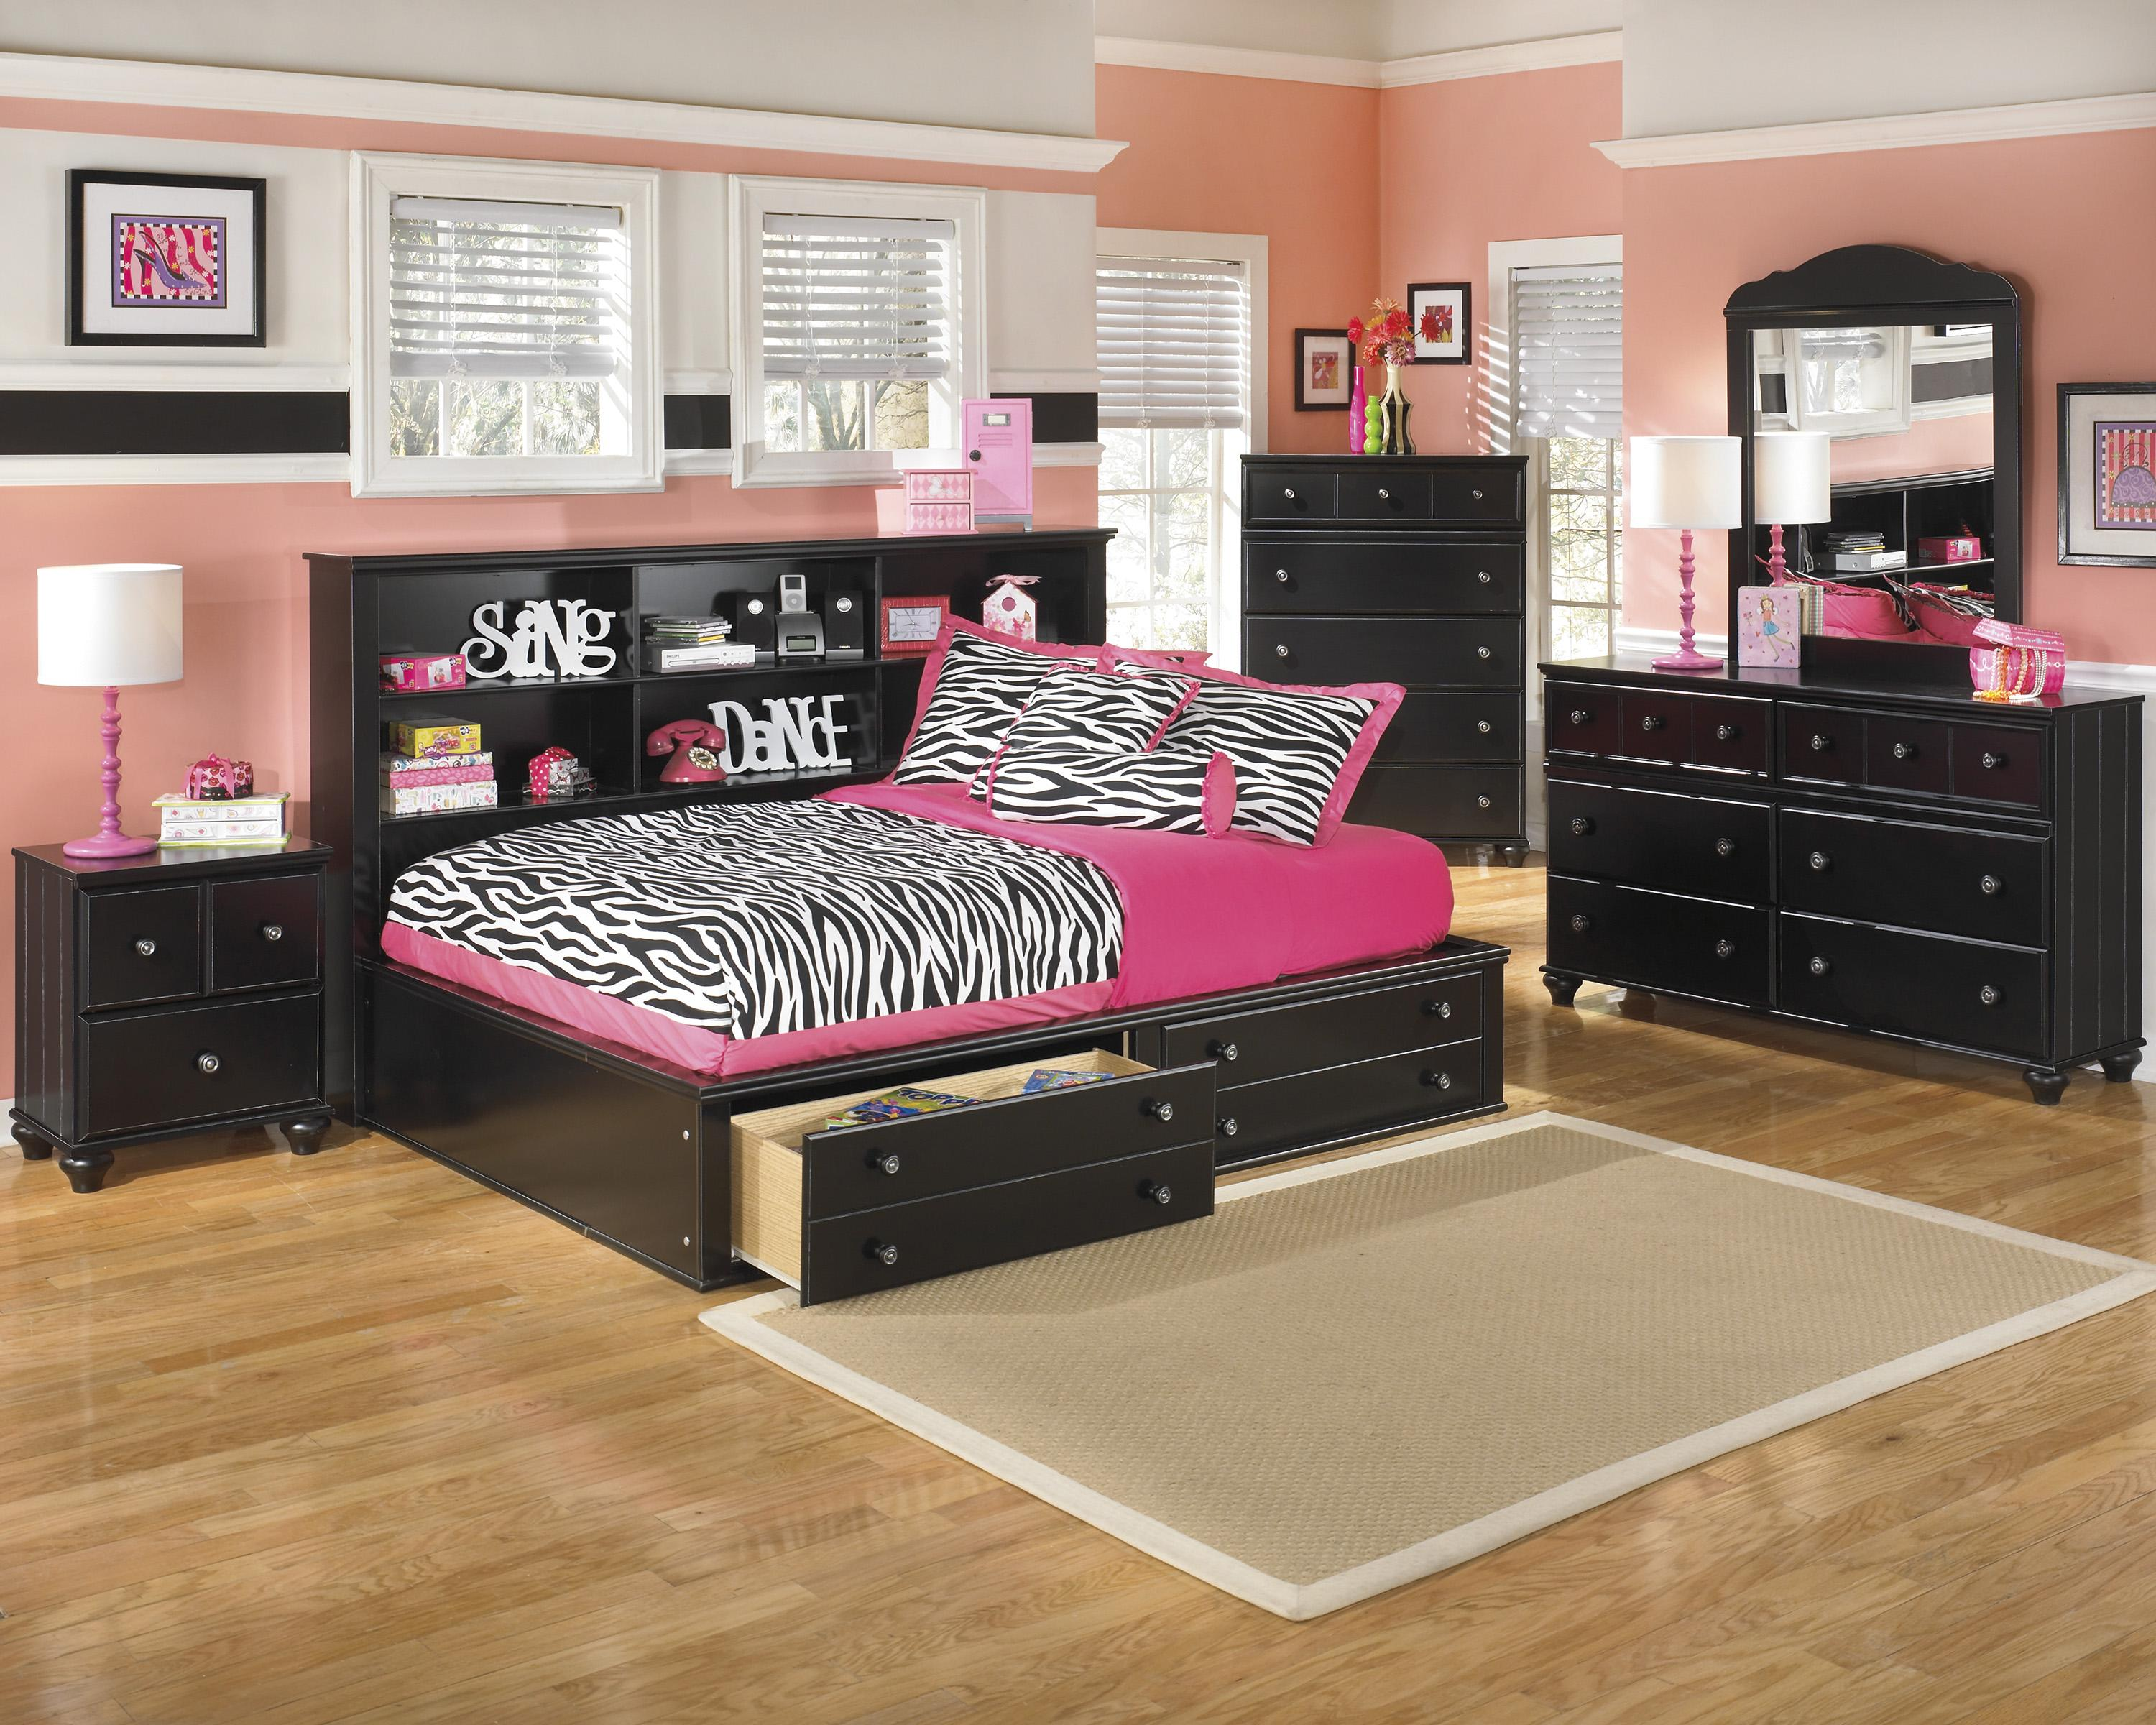 Signature design by ashley jaidyn full bookcase bed with footboard storage miskelly furniture - Ashley furniture full size bed ...